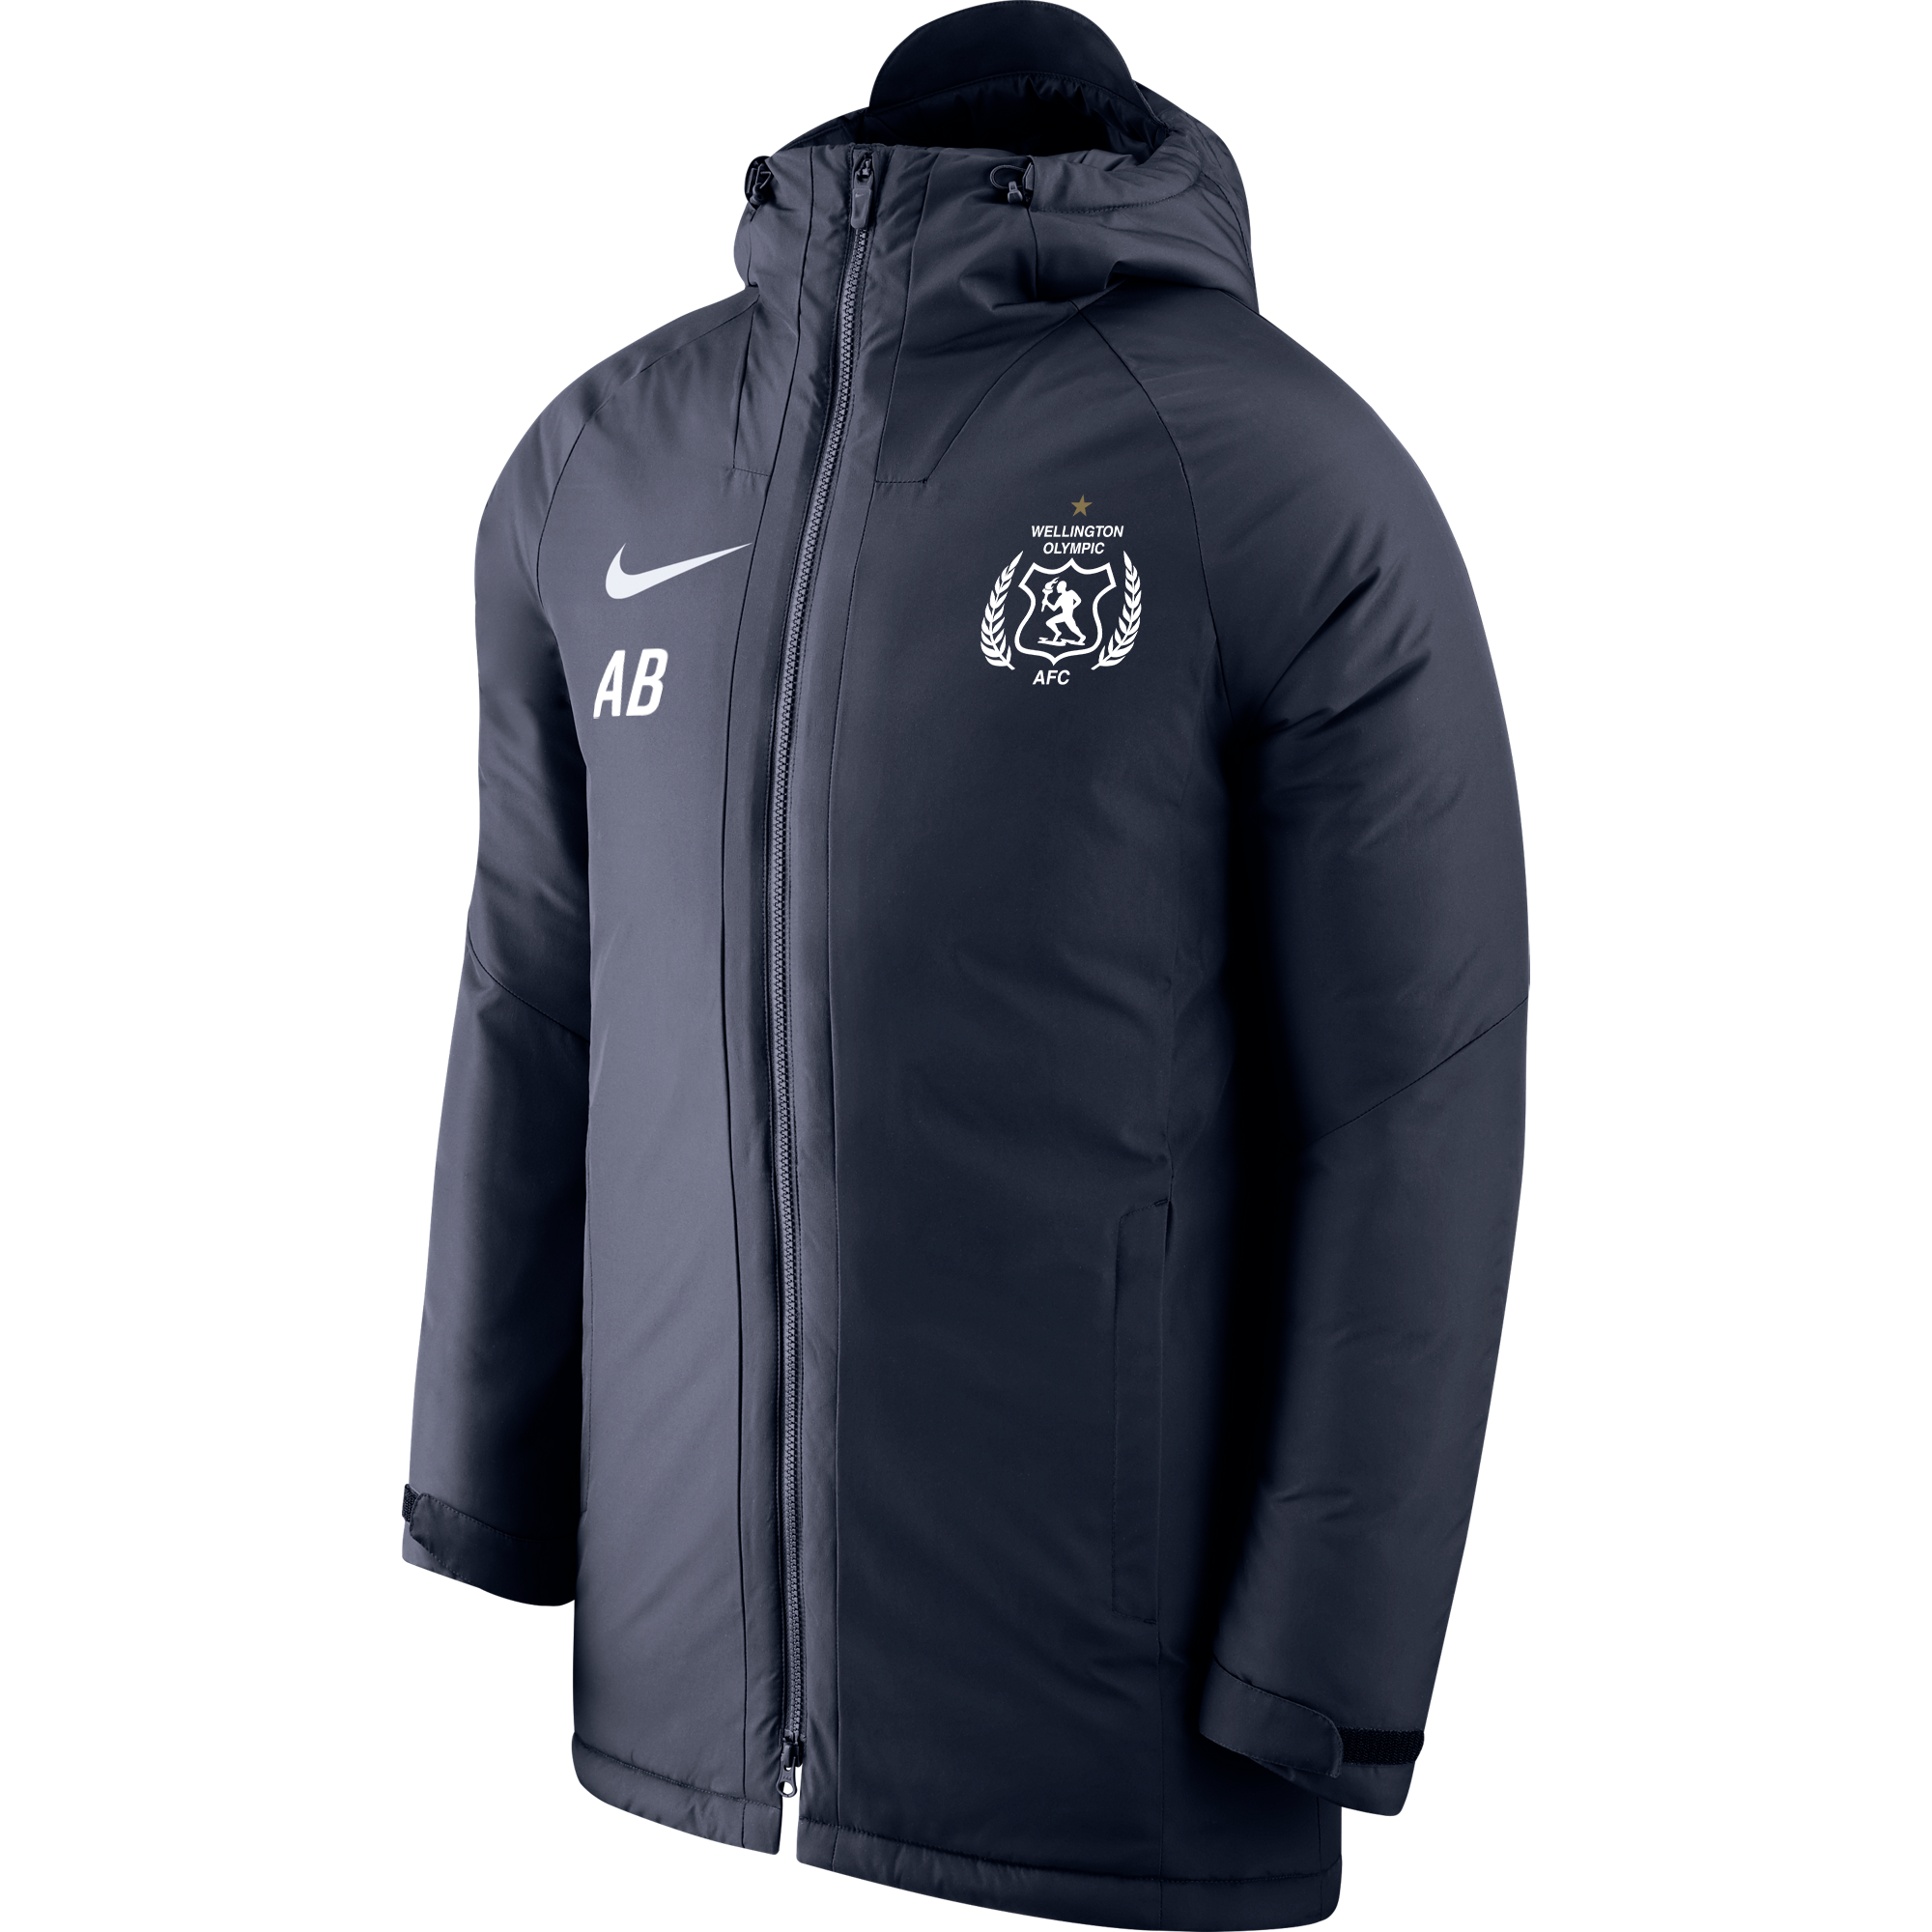 Nike-Team-Winter-Jacket-Wellington-Olympic